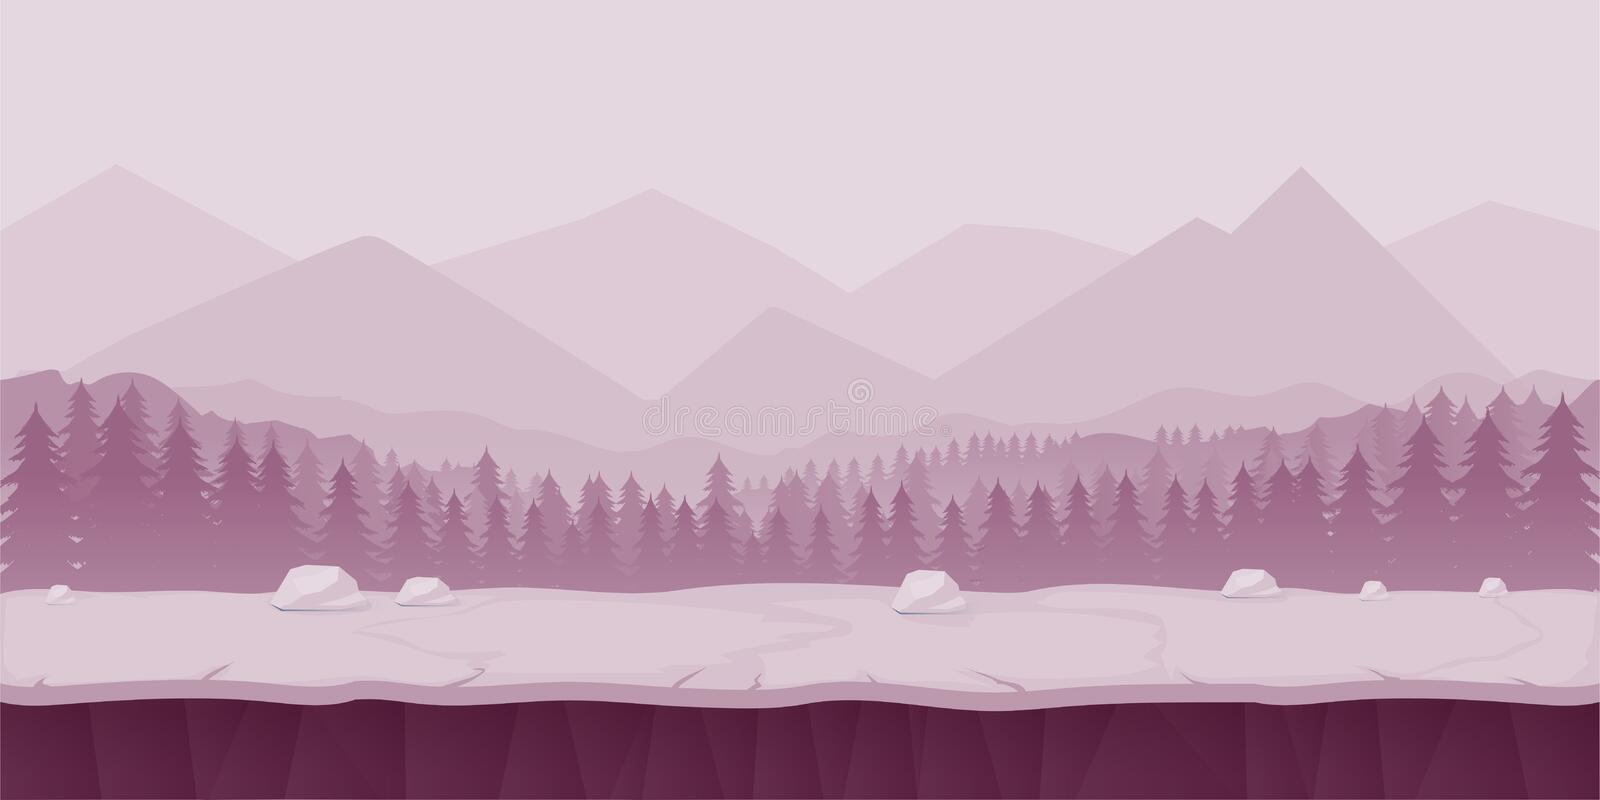 Fantasy cartoon landscape, seamless nature background for game design, layered vector illustration parallax effect vector illustration